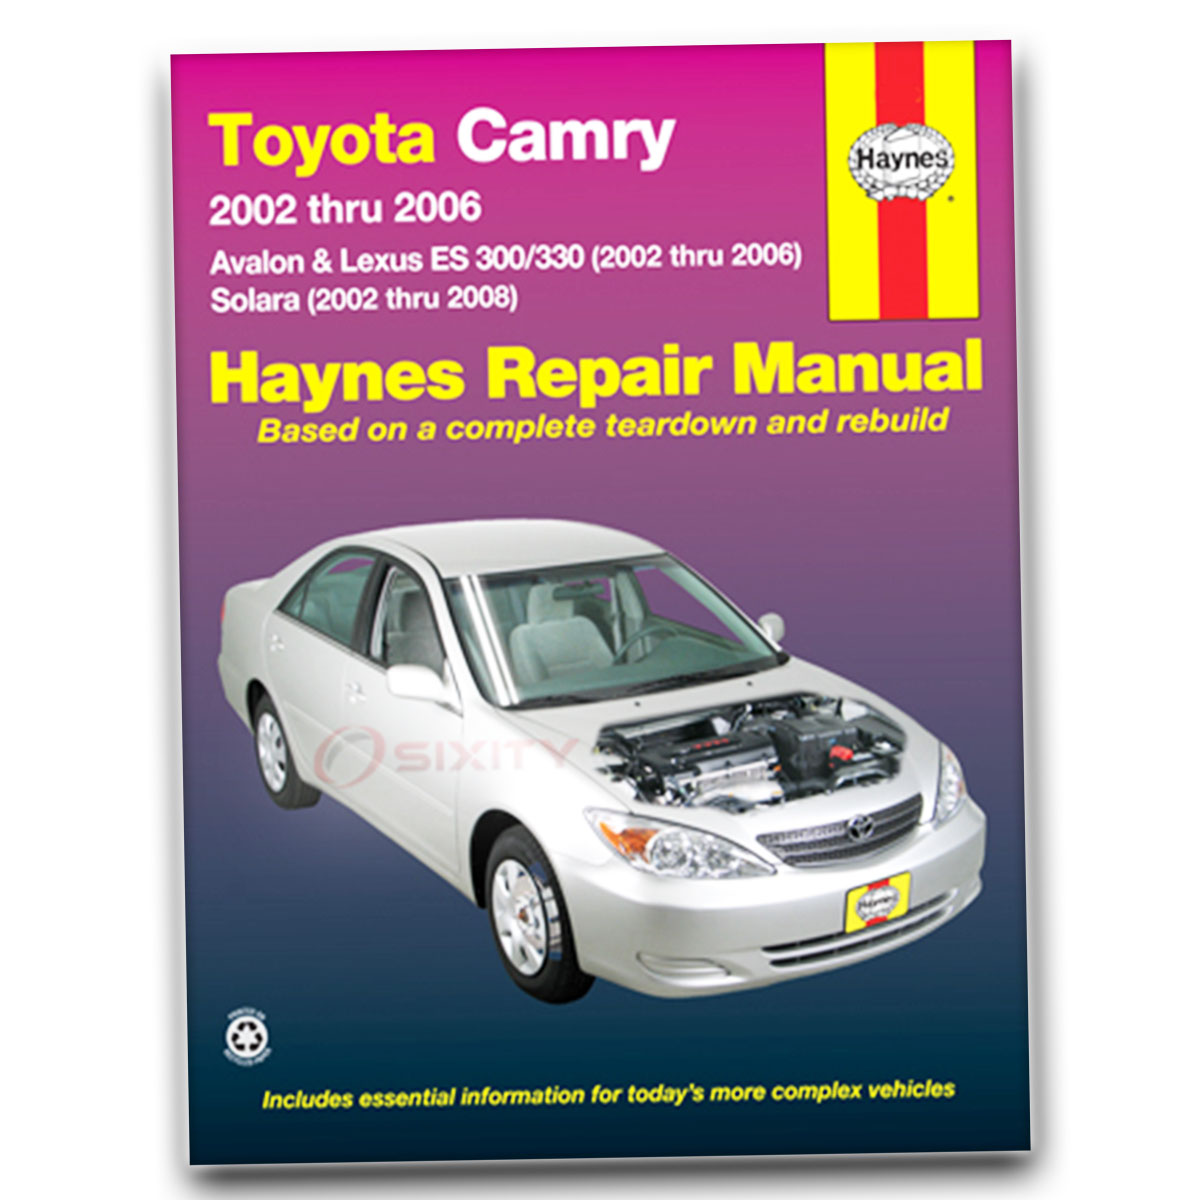 toyota camry haynes repair manual base xle se shop service garage rh ebay com 05 Toyota Tacoma 4 0 Diagram Toyota Parts